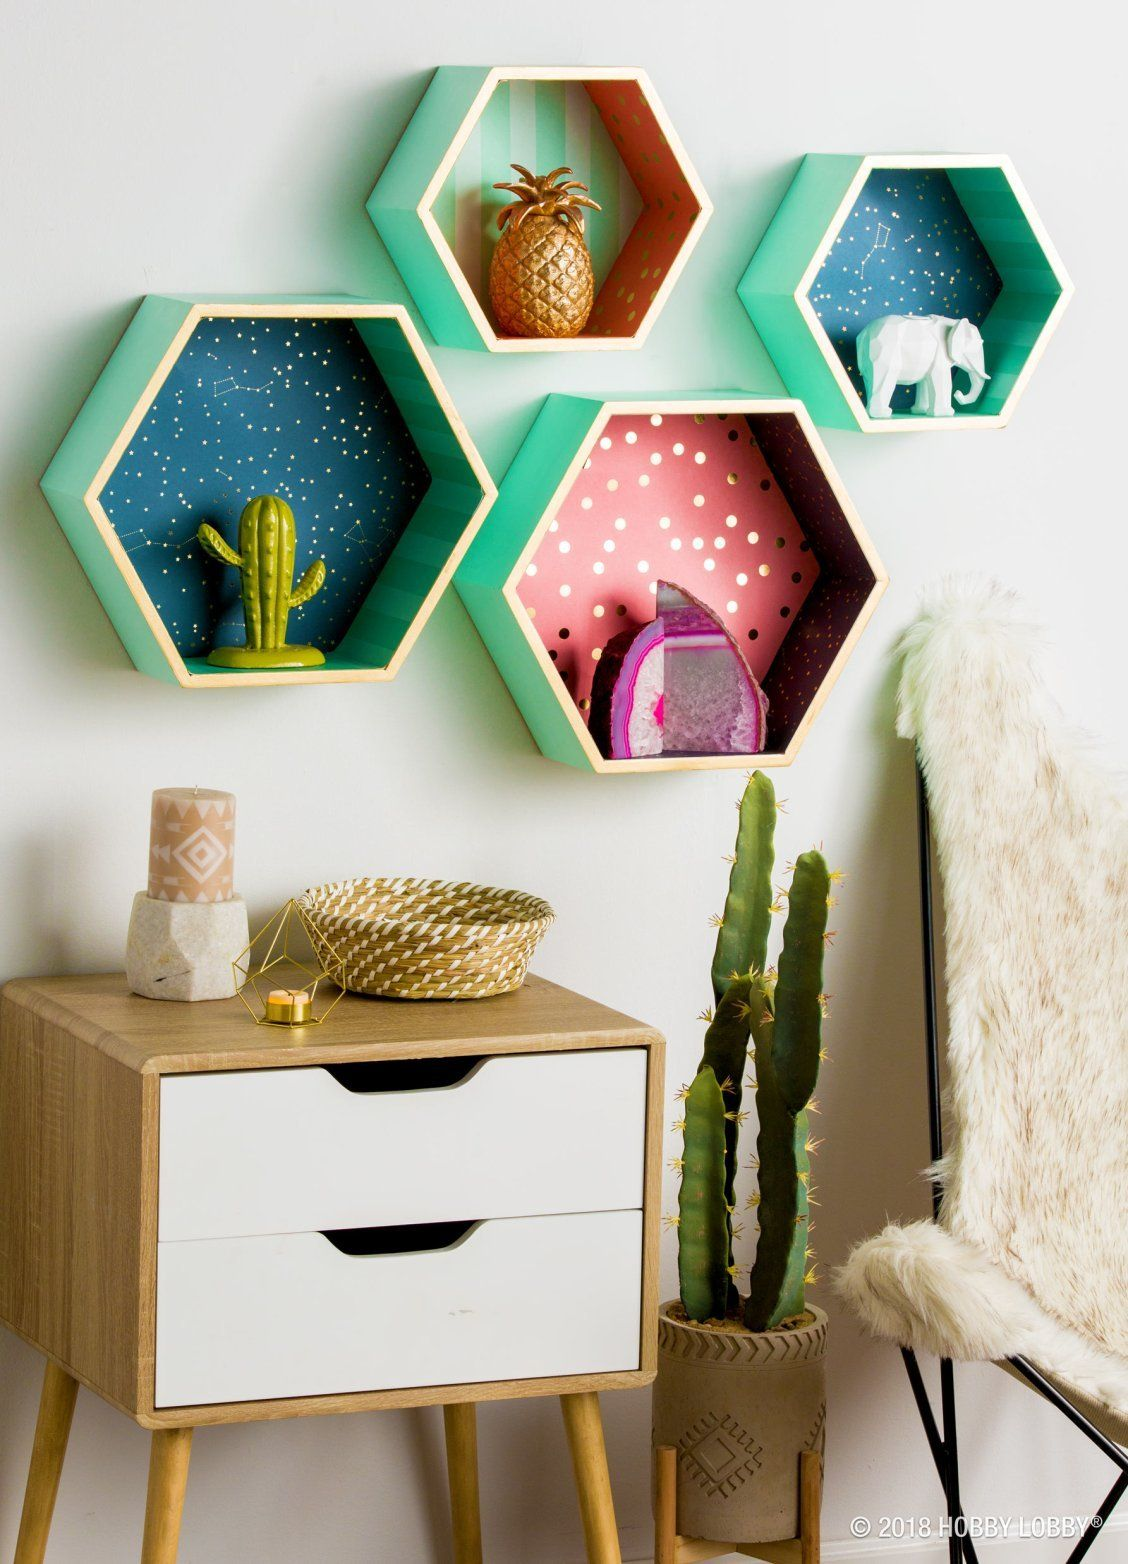 Make your shelves go from holding decor to being decor